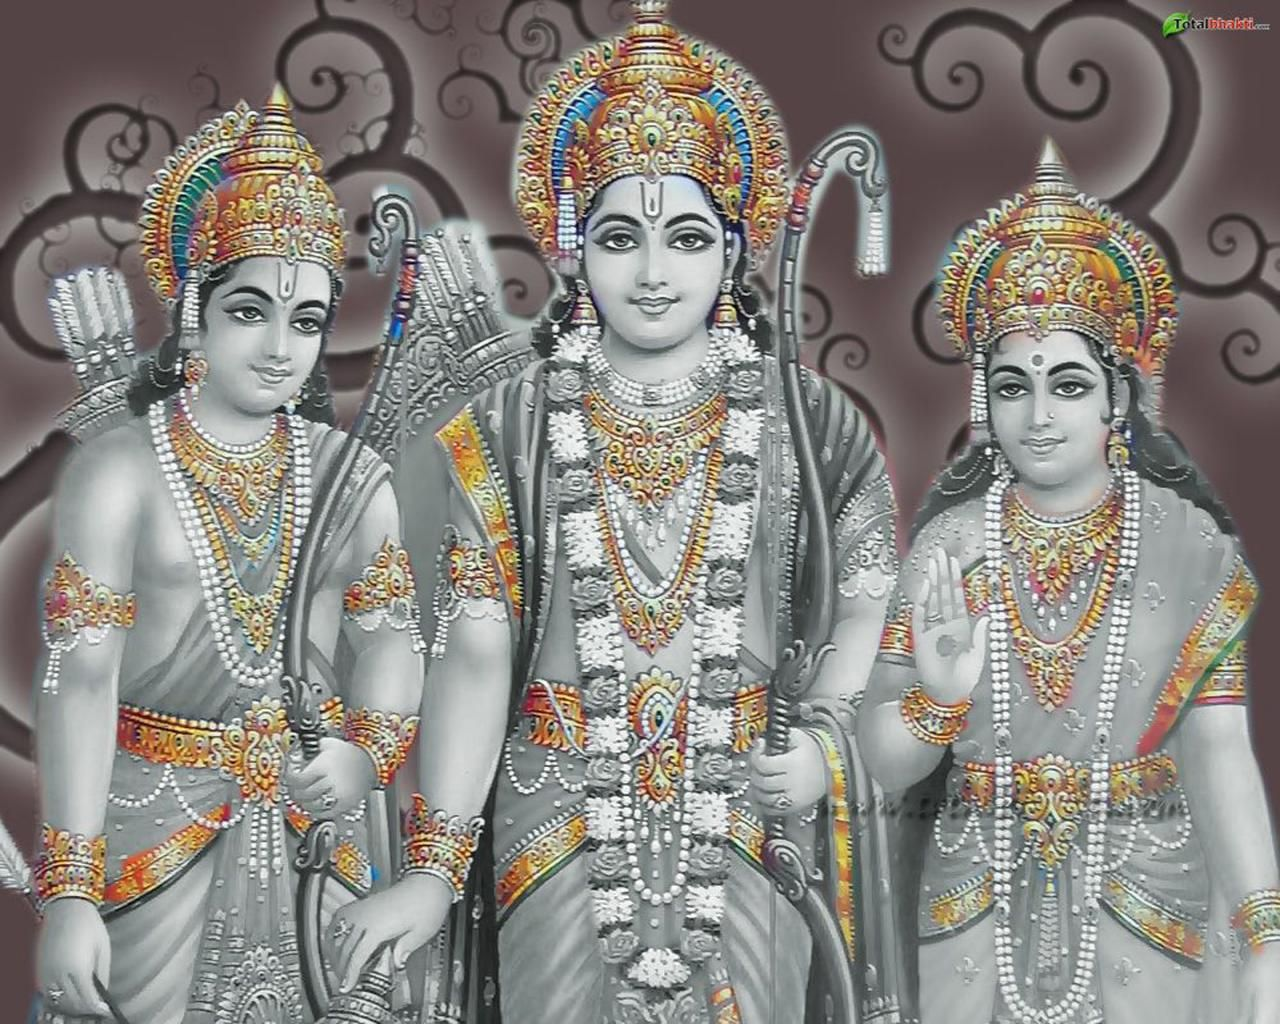 Hd wallpaper jai shri ram - Find This Pin And More On Supreme Being Shri Ram